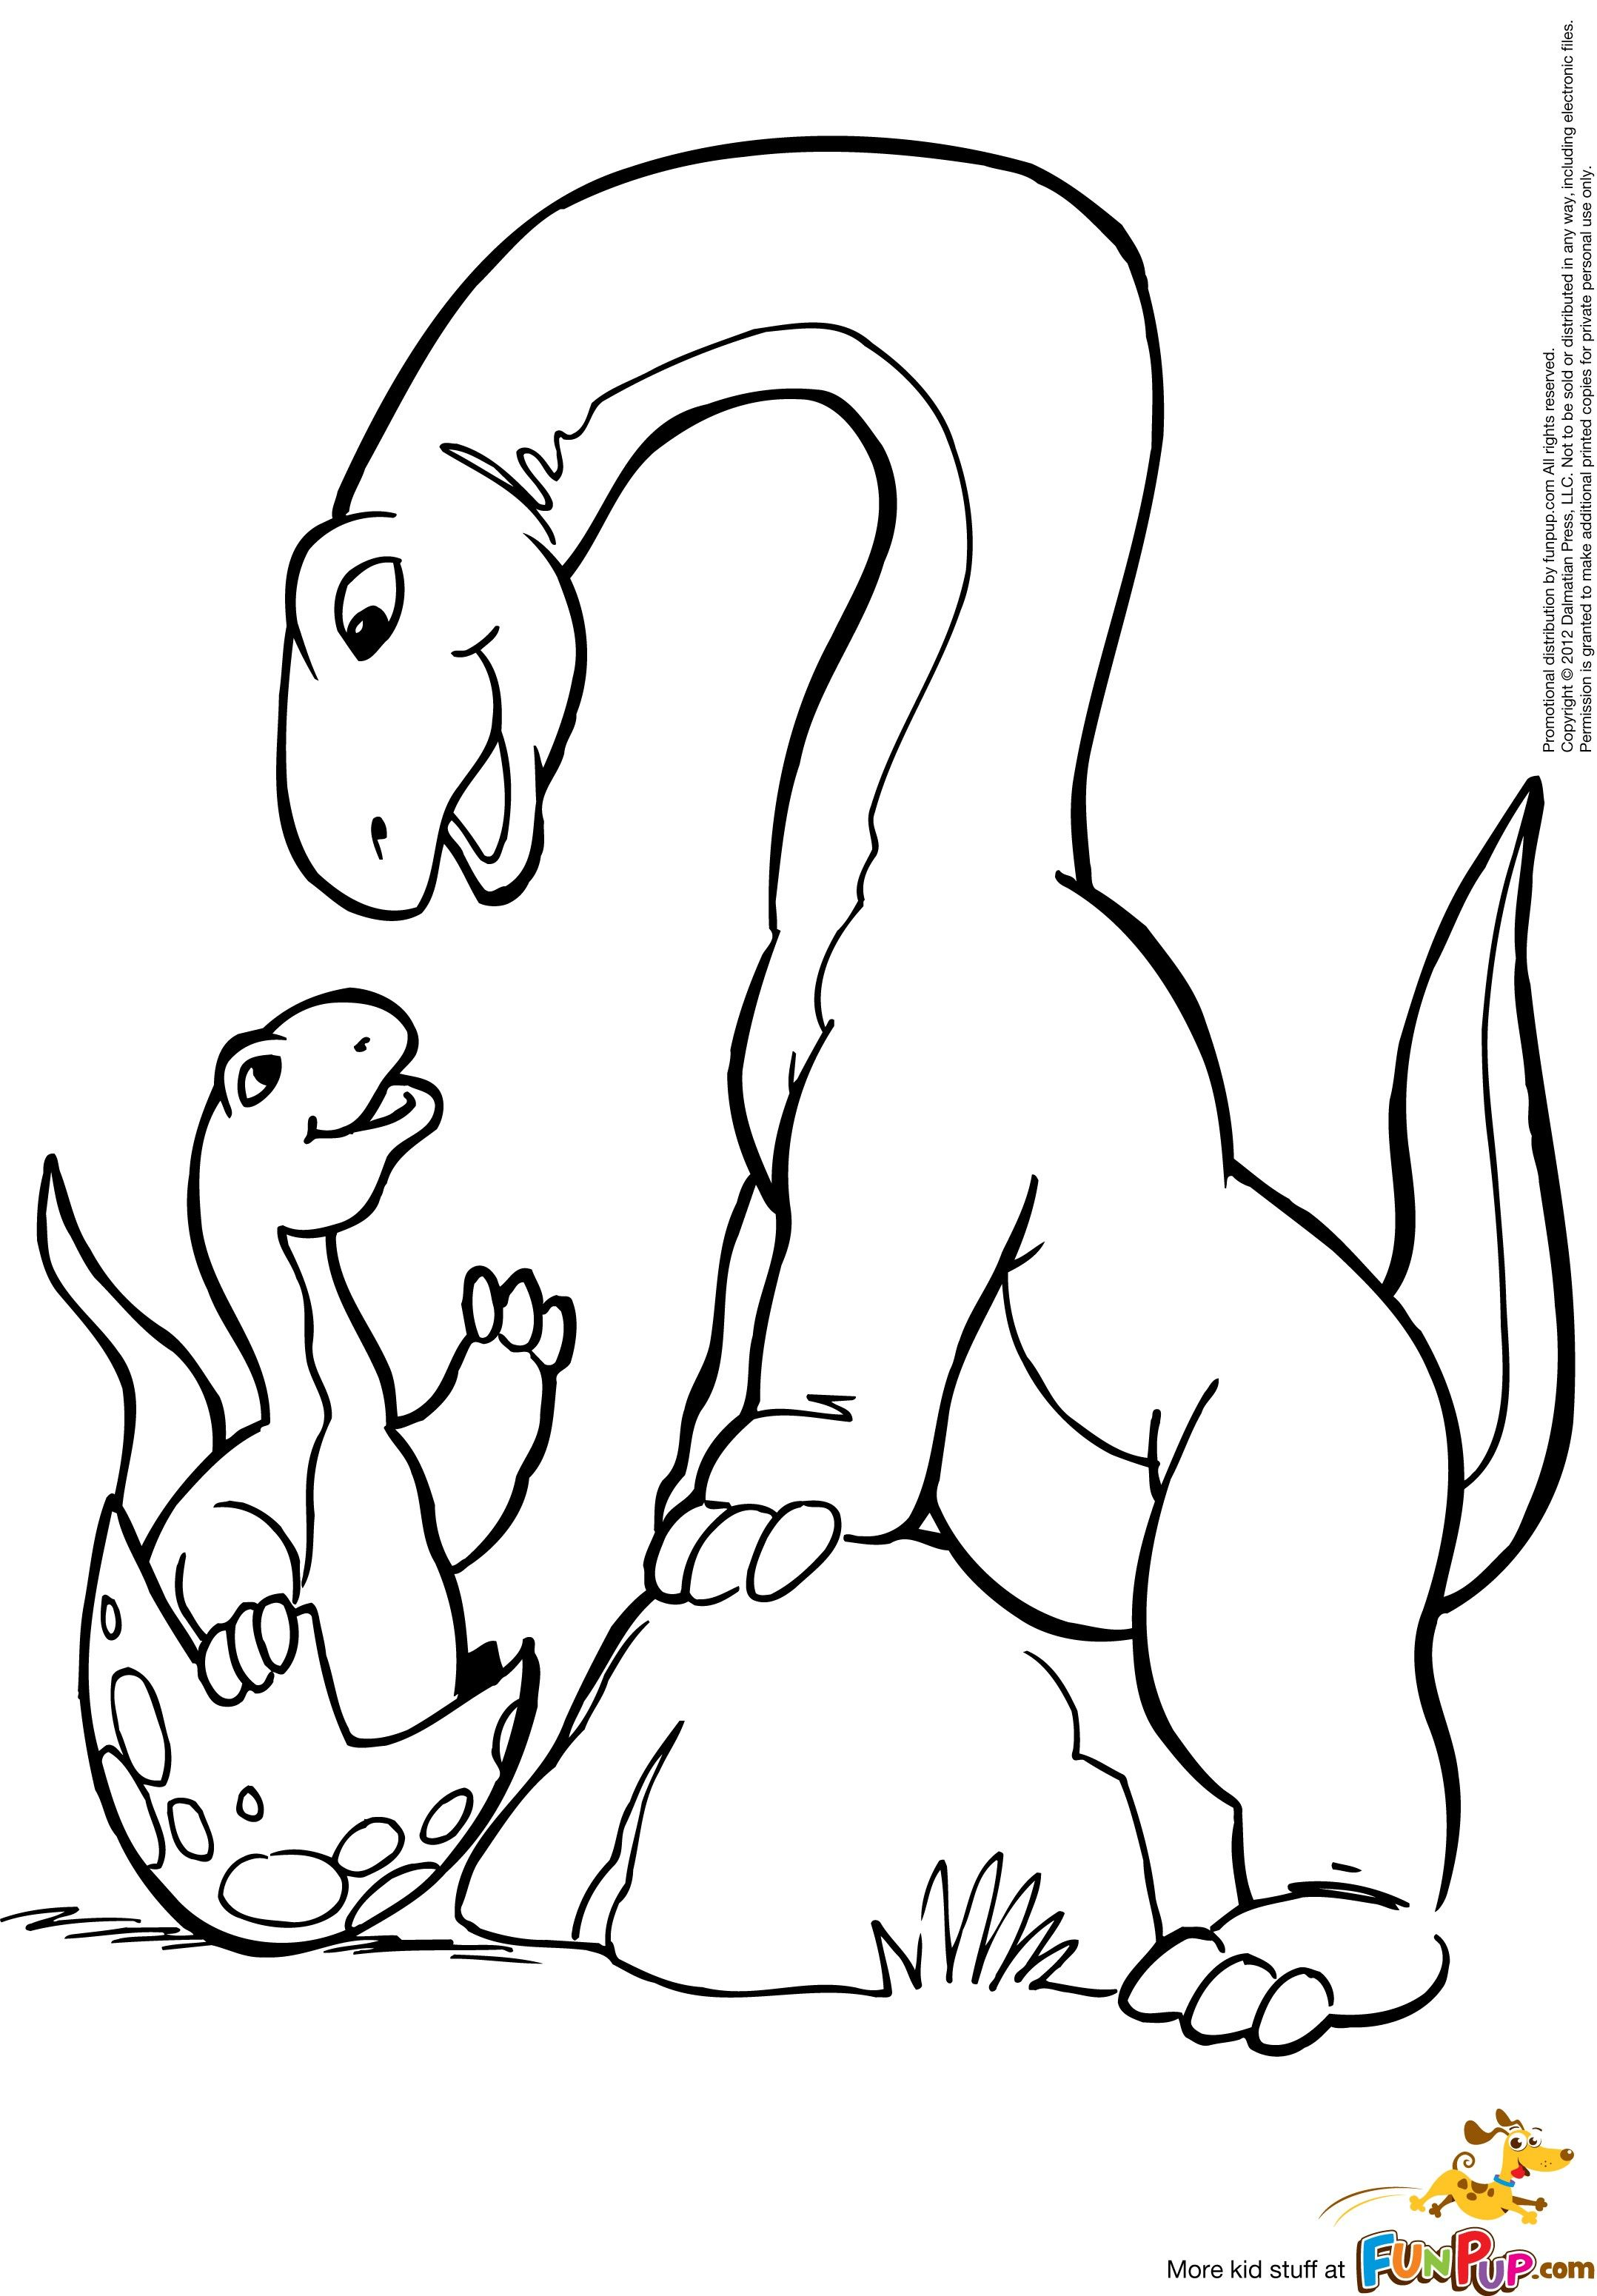 Coloring pages dinosaurs and dragons - Brachiosaurus And Baby 0 00 Kids Coloringcoloring Sheetscoloring Pagescolouringdinosaur Partydragon